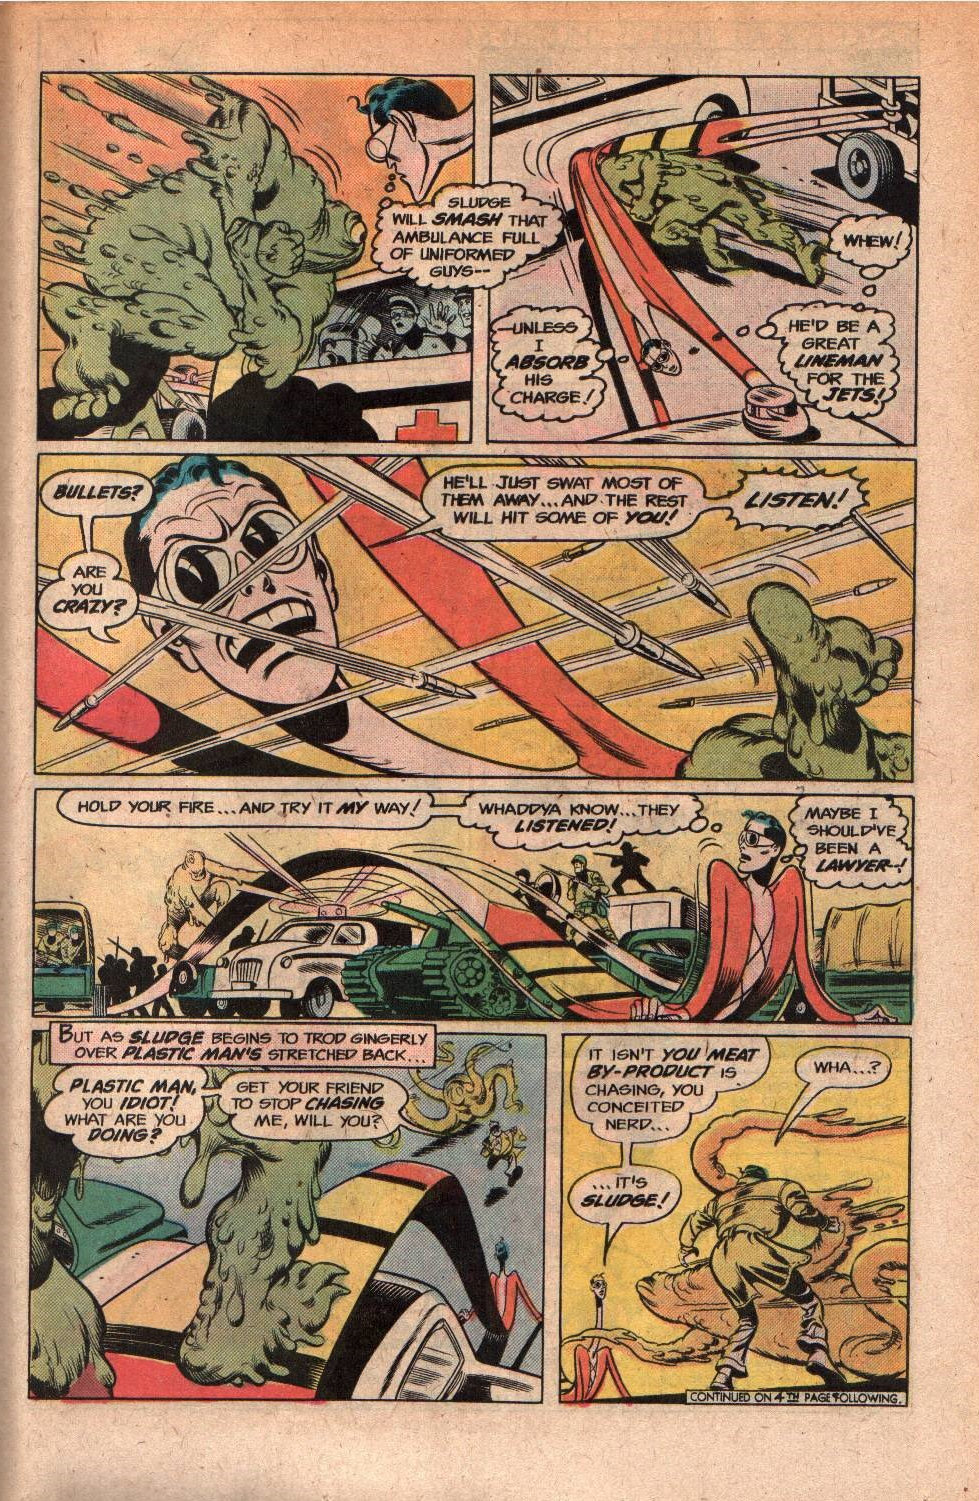 Plastic Man (1966) #14 pg19, penciled by Ramona Fradon & inked by Mike Royer.